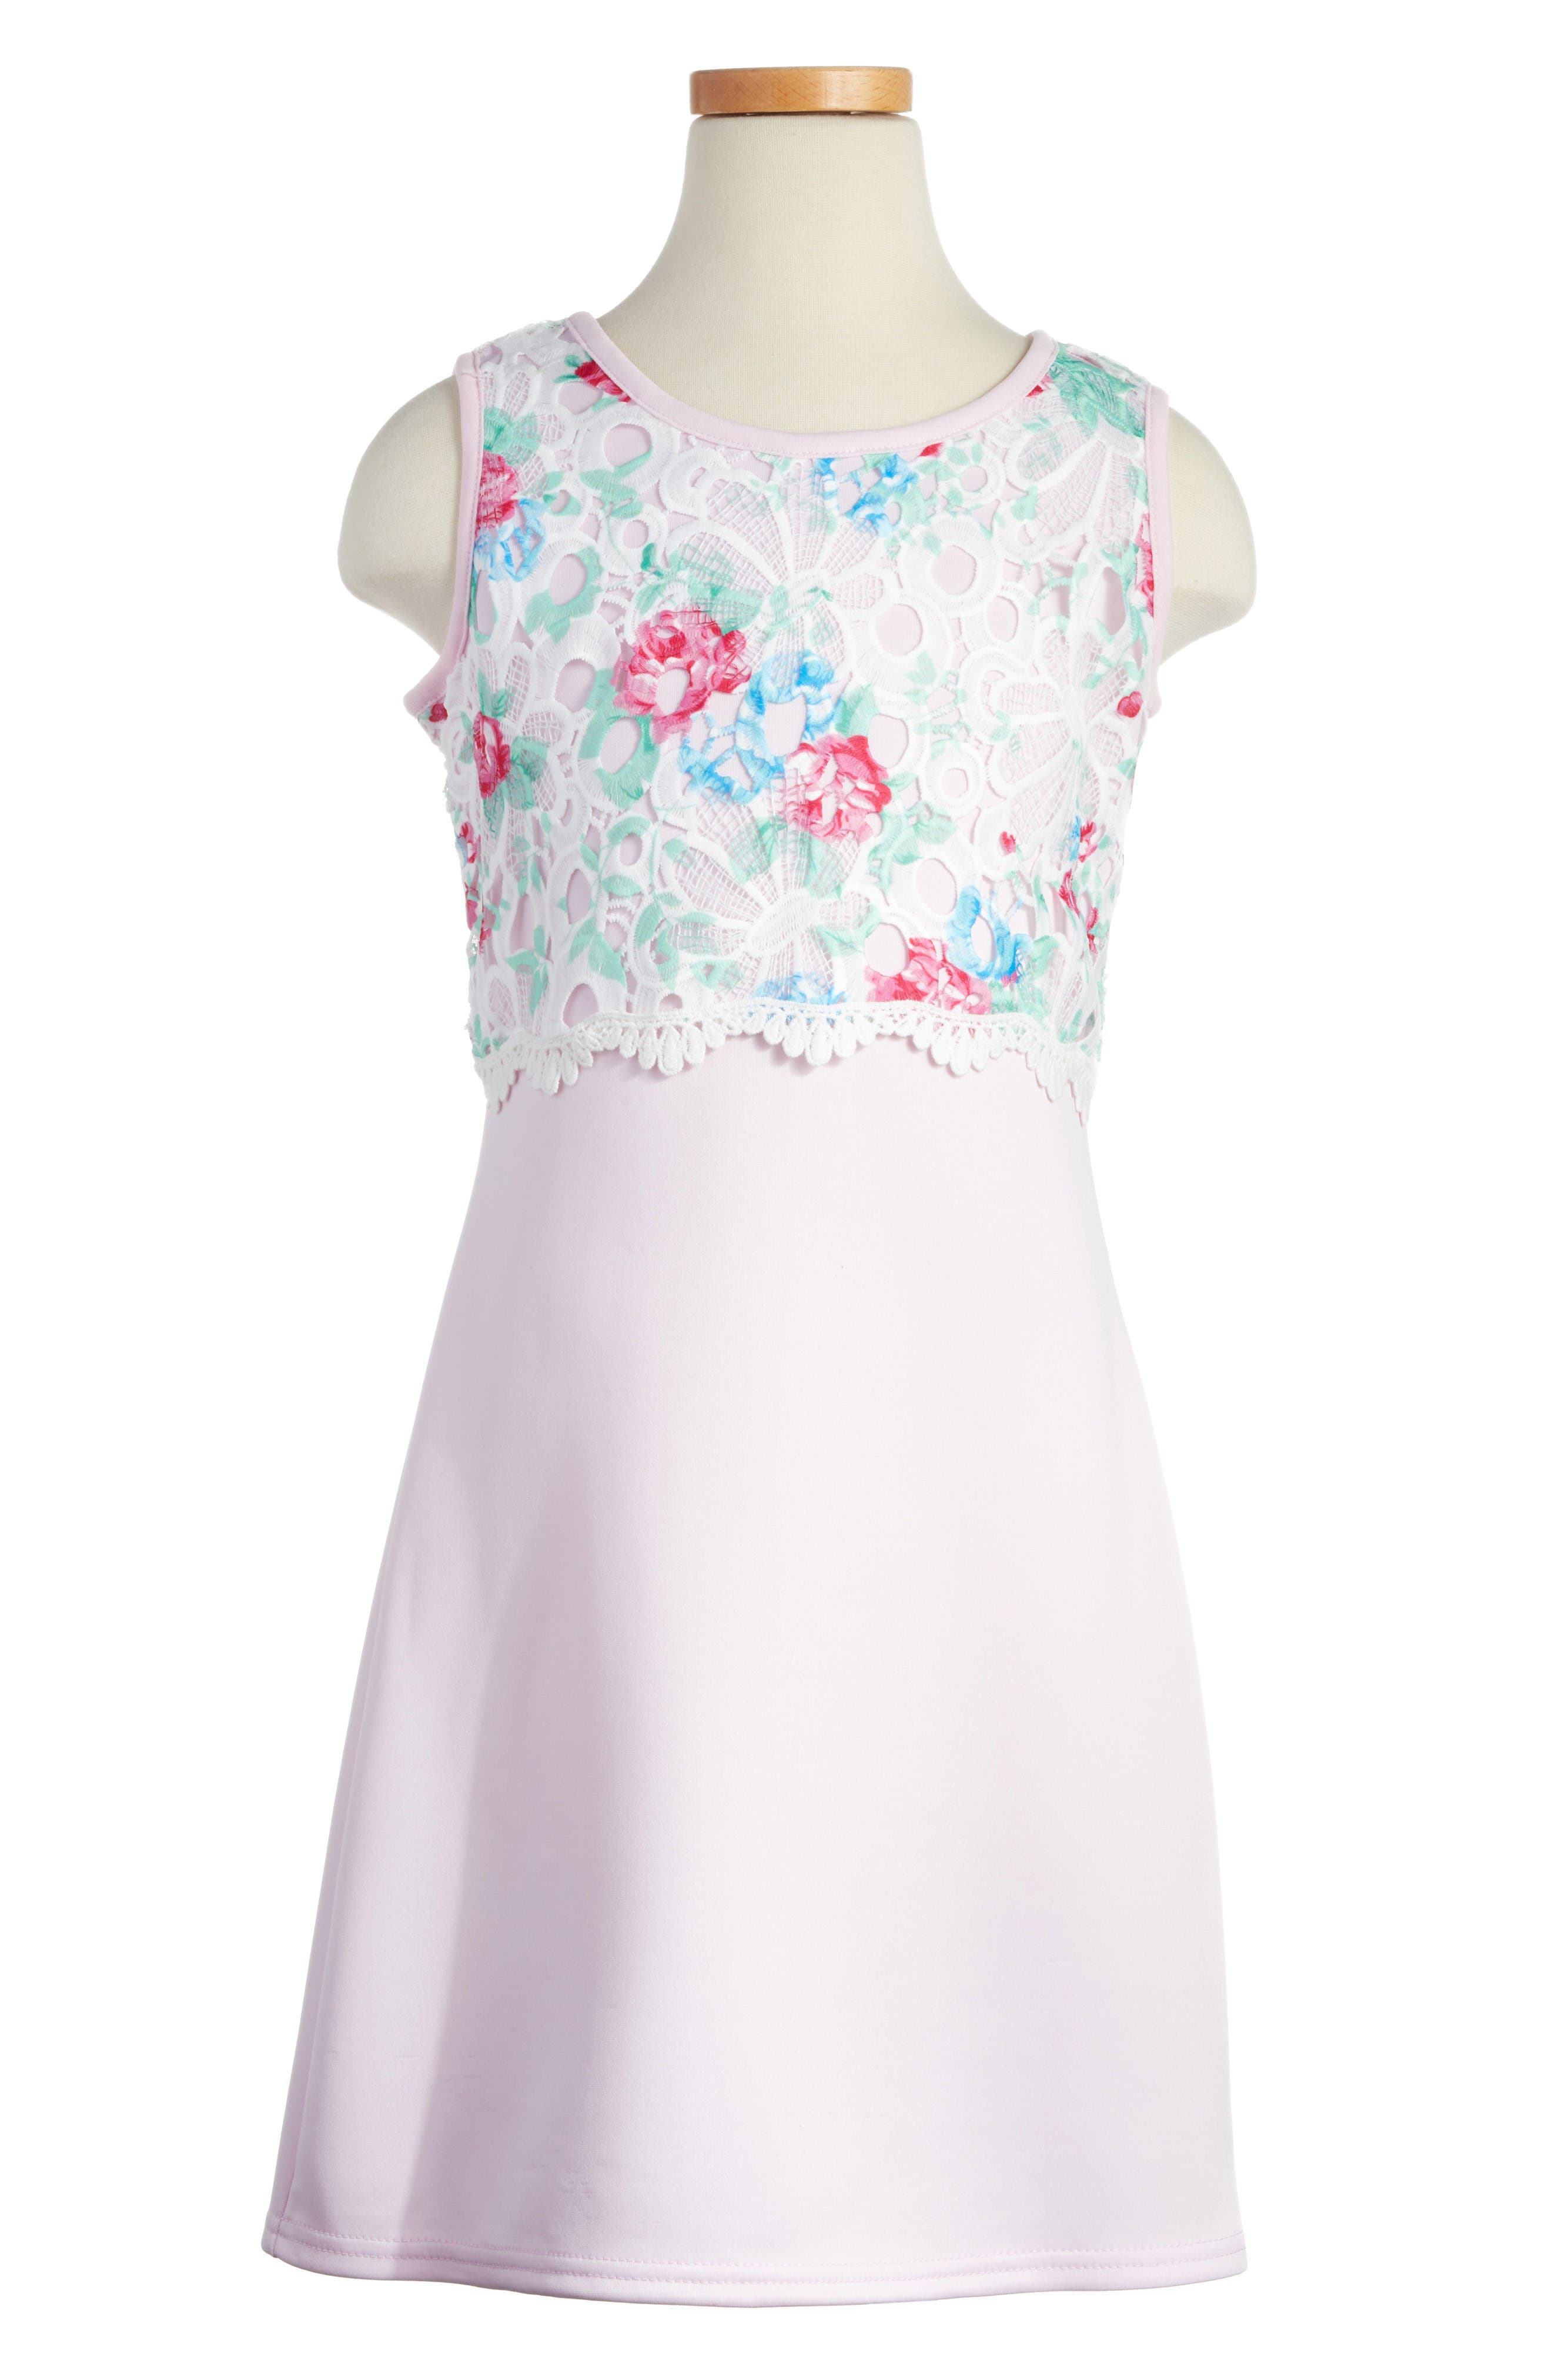 BLUSH BY US ANGELS Floral Popover Sheath Dress